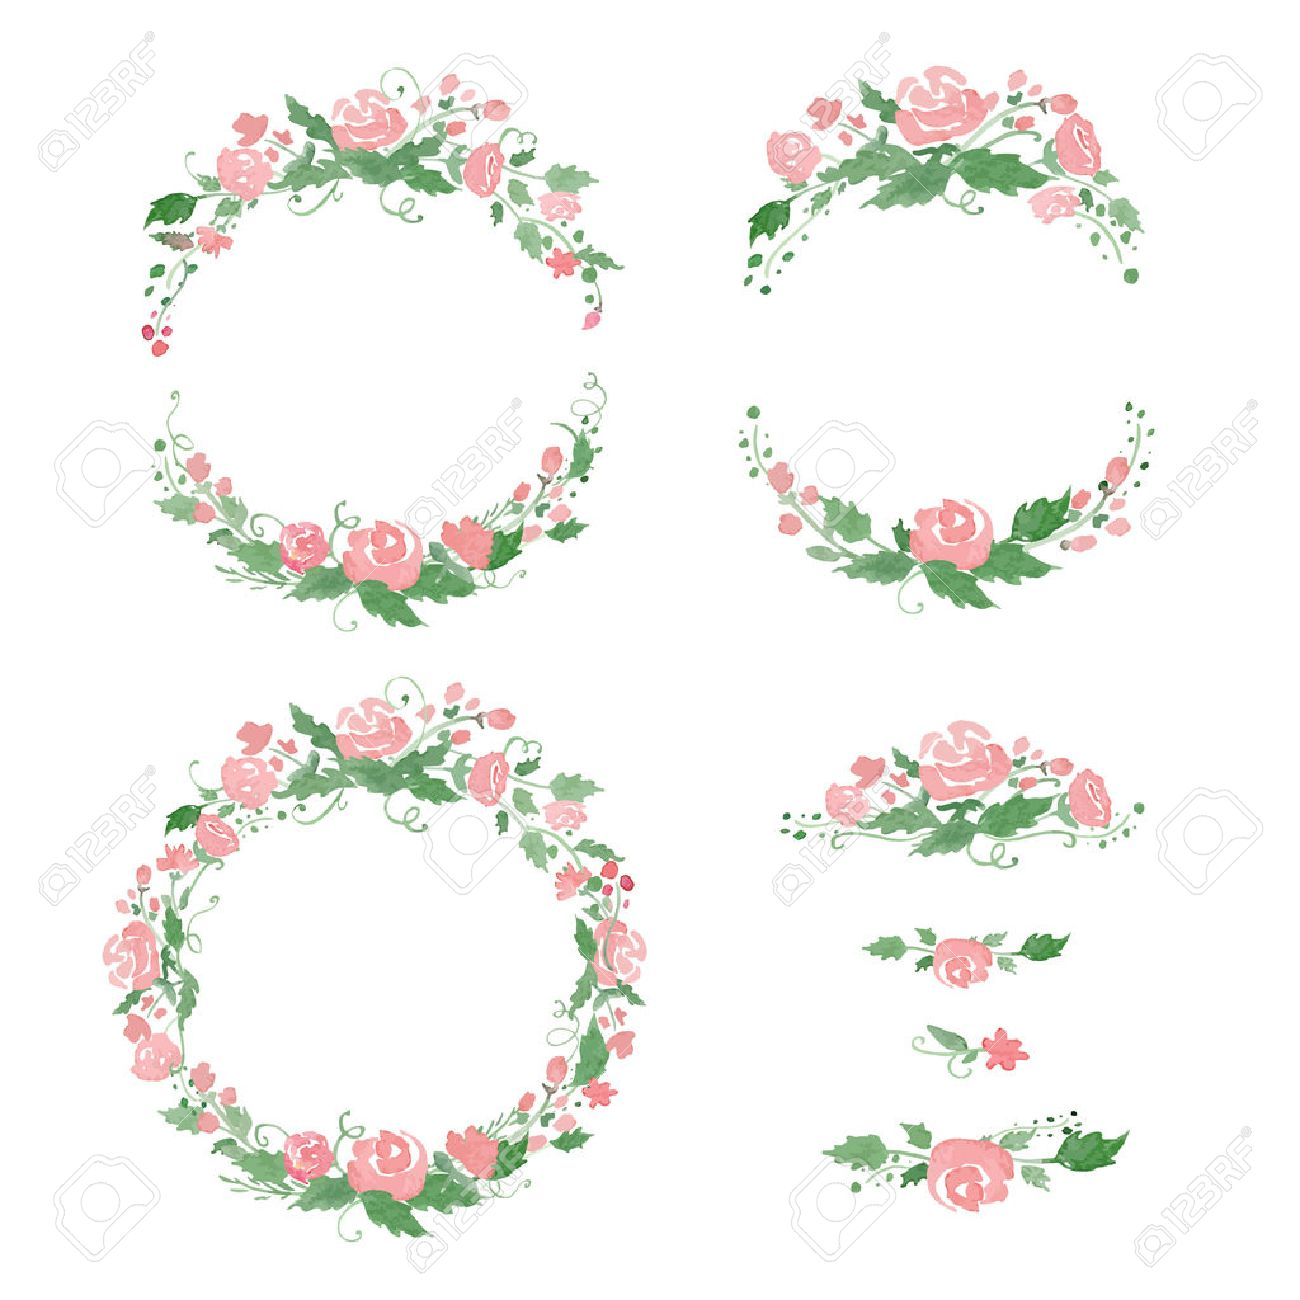 Watercolor floral frames, wreath, dividers. - 39567557